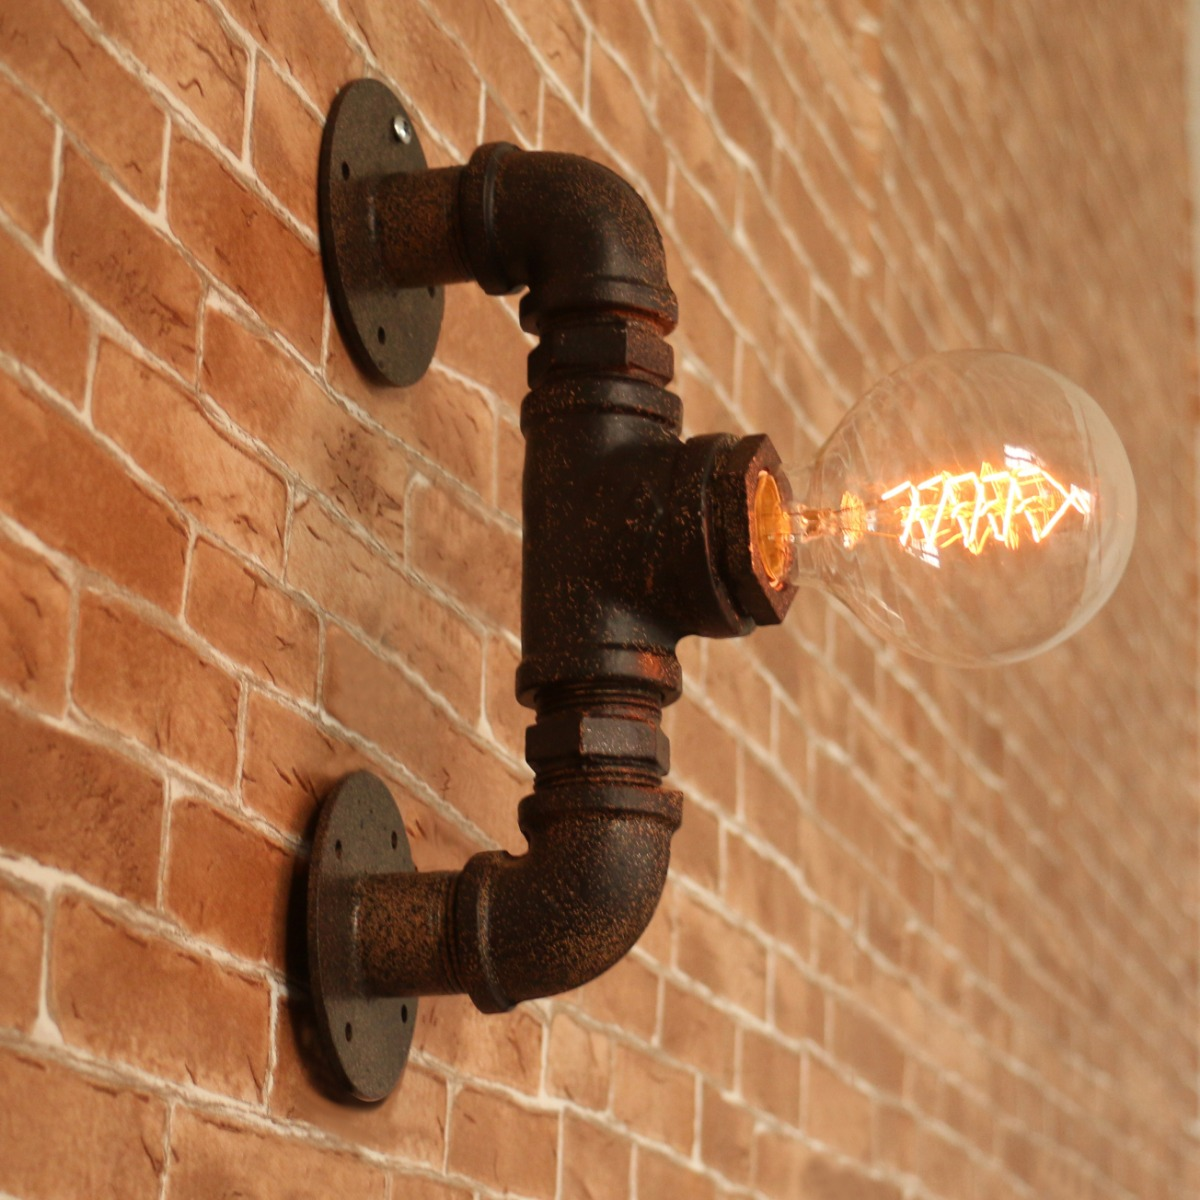 Industrial Pipe Wall Light: Industrial Wall Pipe Lamp Retro Wall Light Rustic Vintage